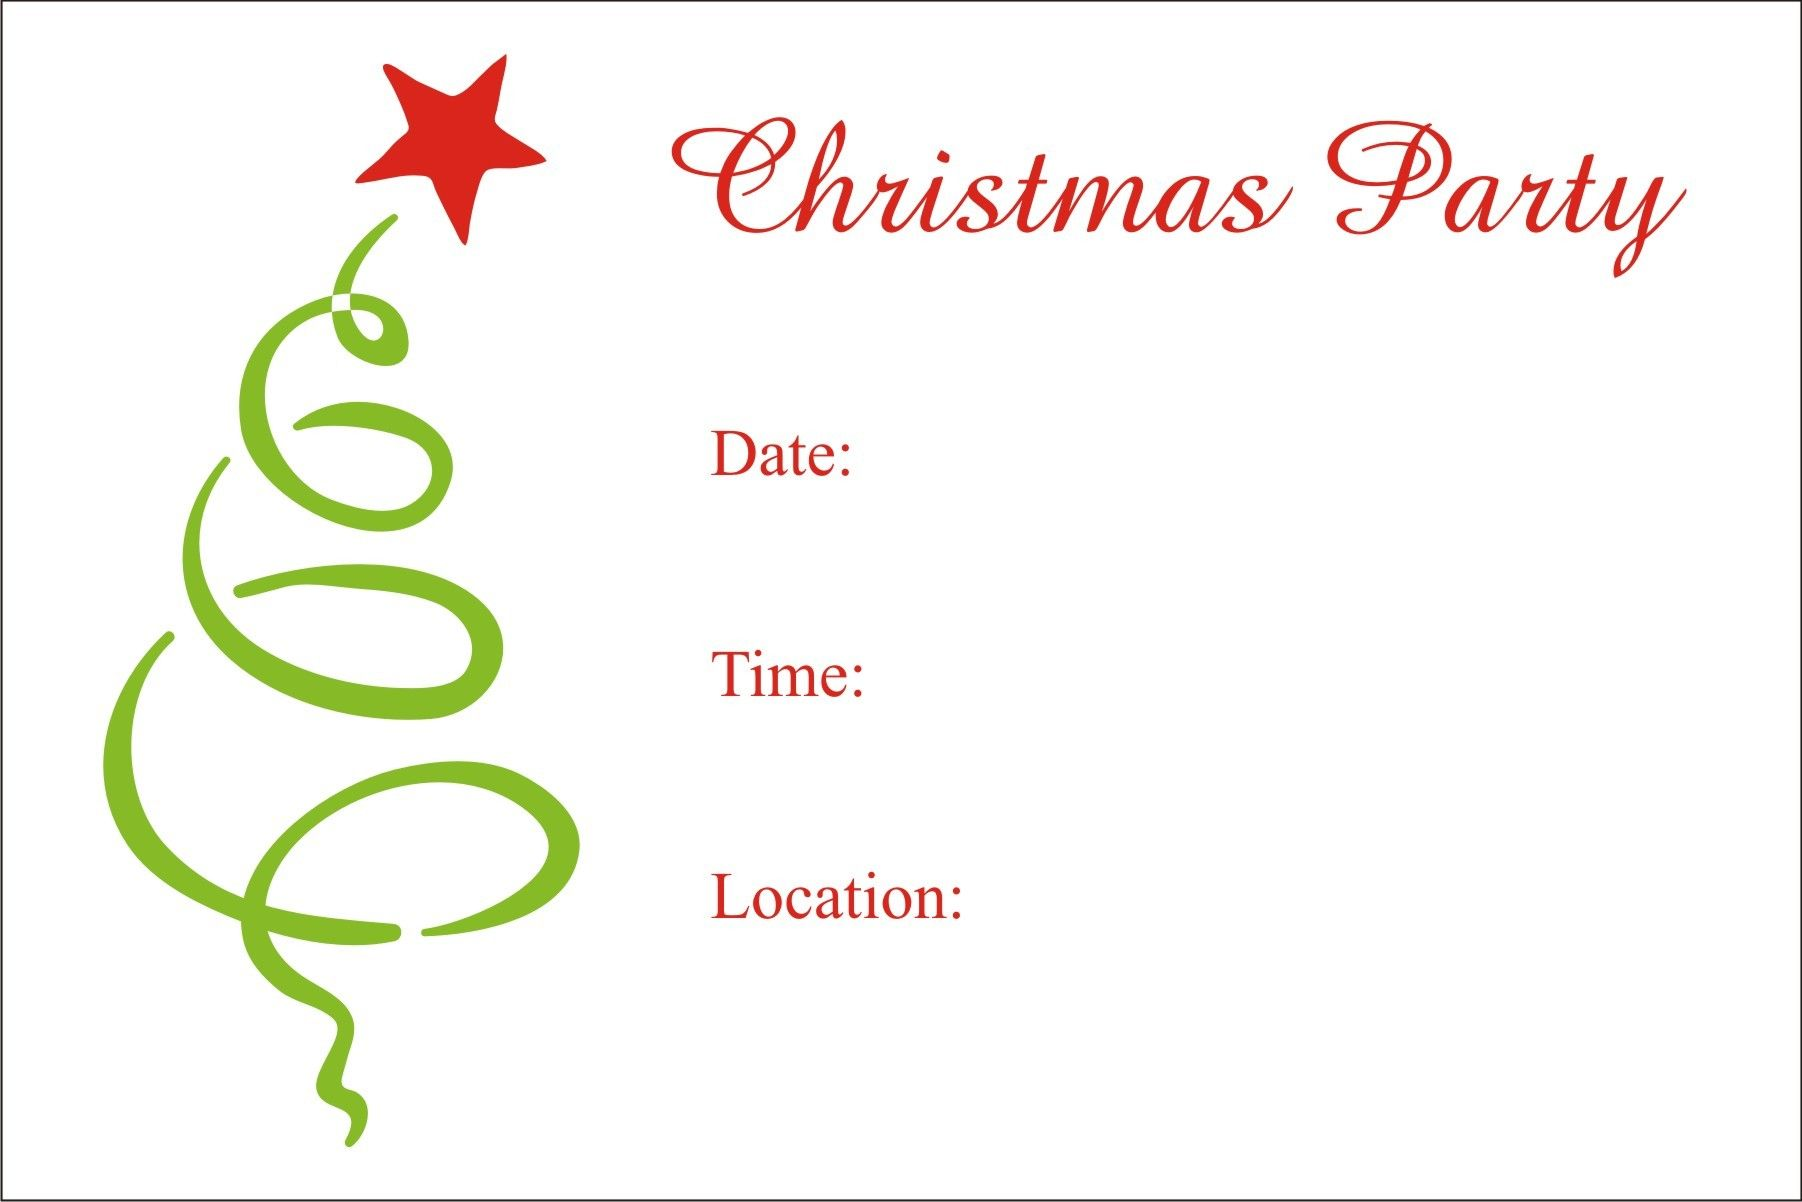 Downloadable Christmas Party Invitations Templates Free Amusing Christmas Party Free Printable Holiday Invitation Just In Time For .